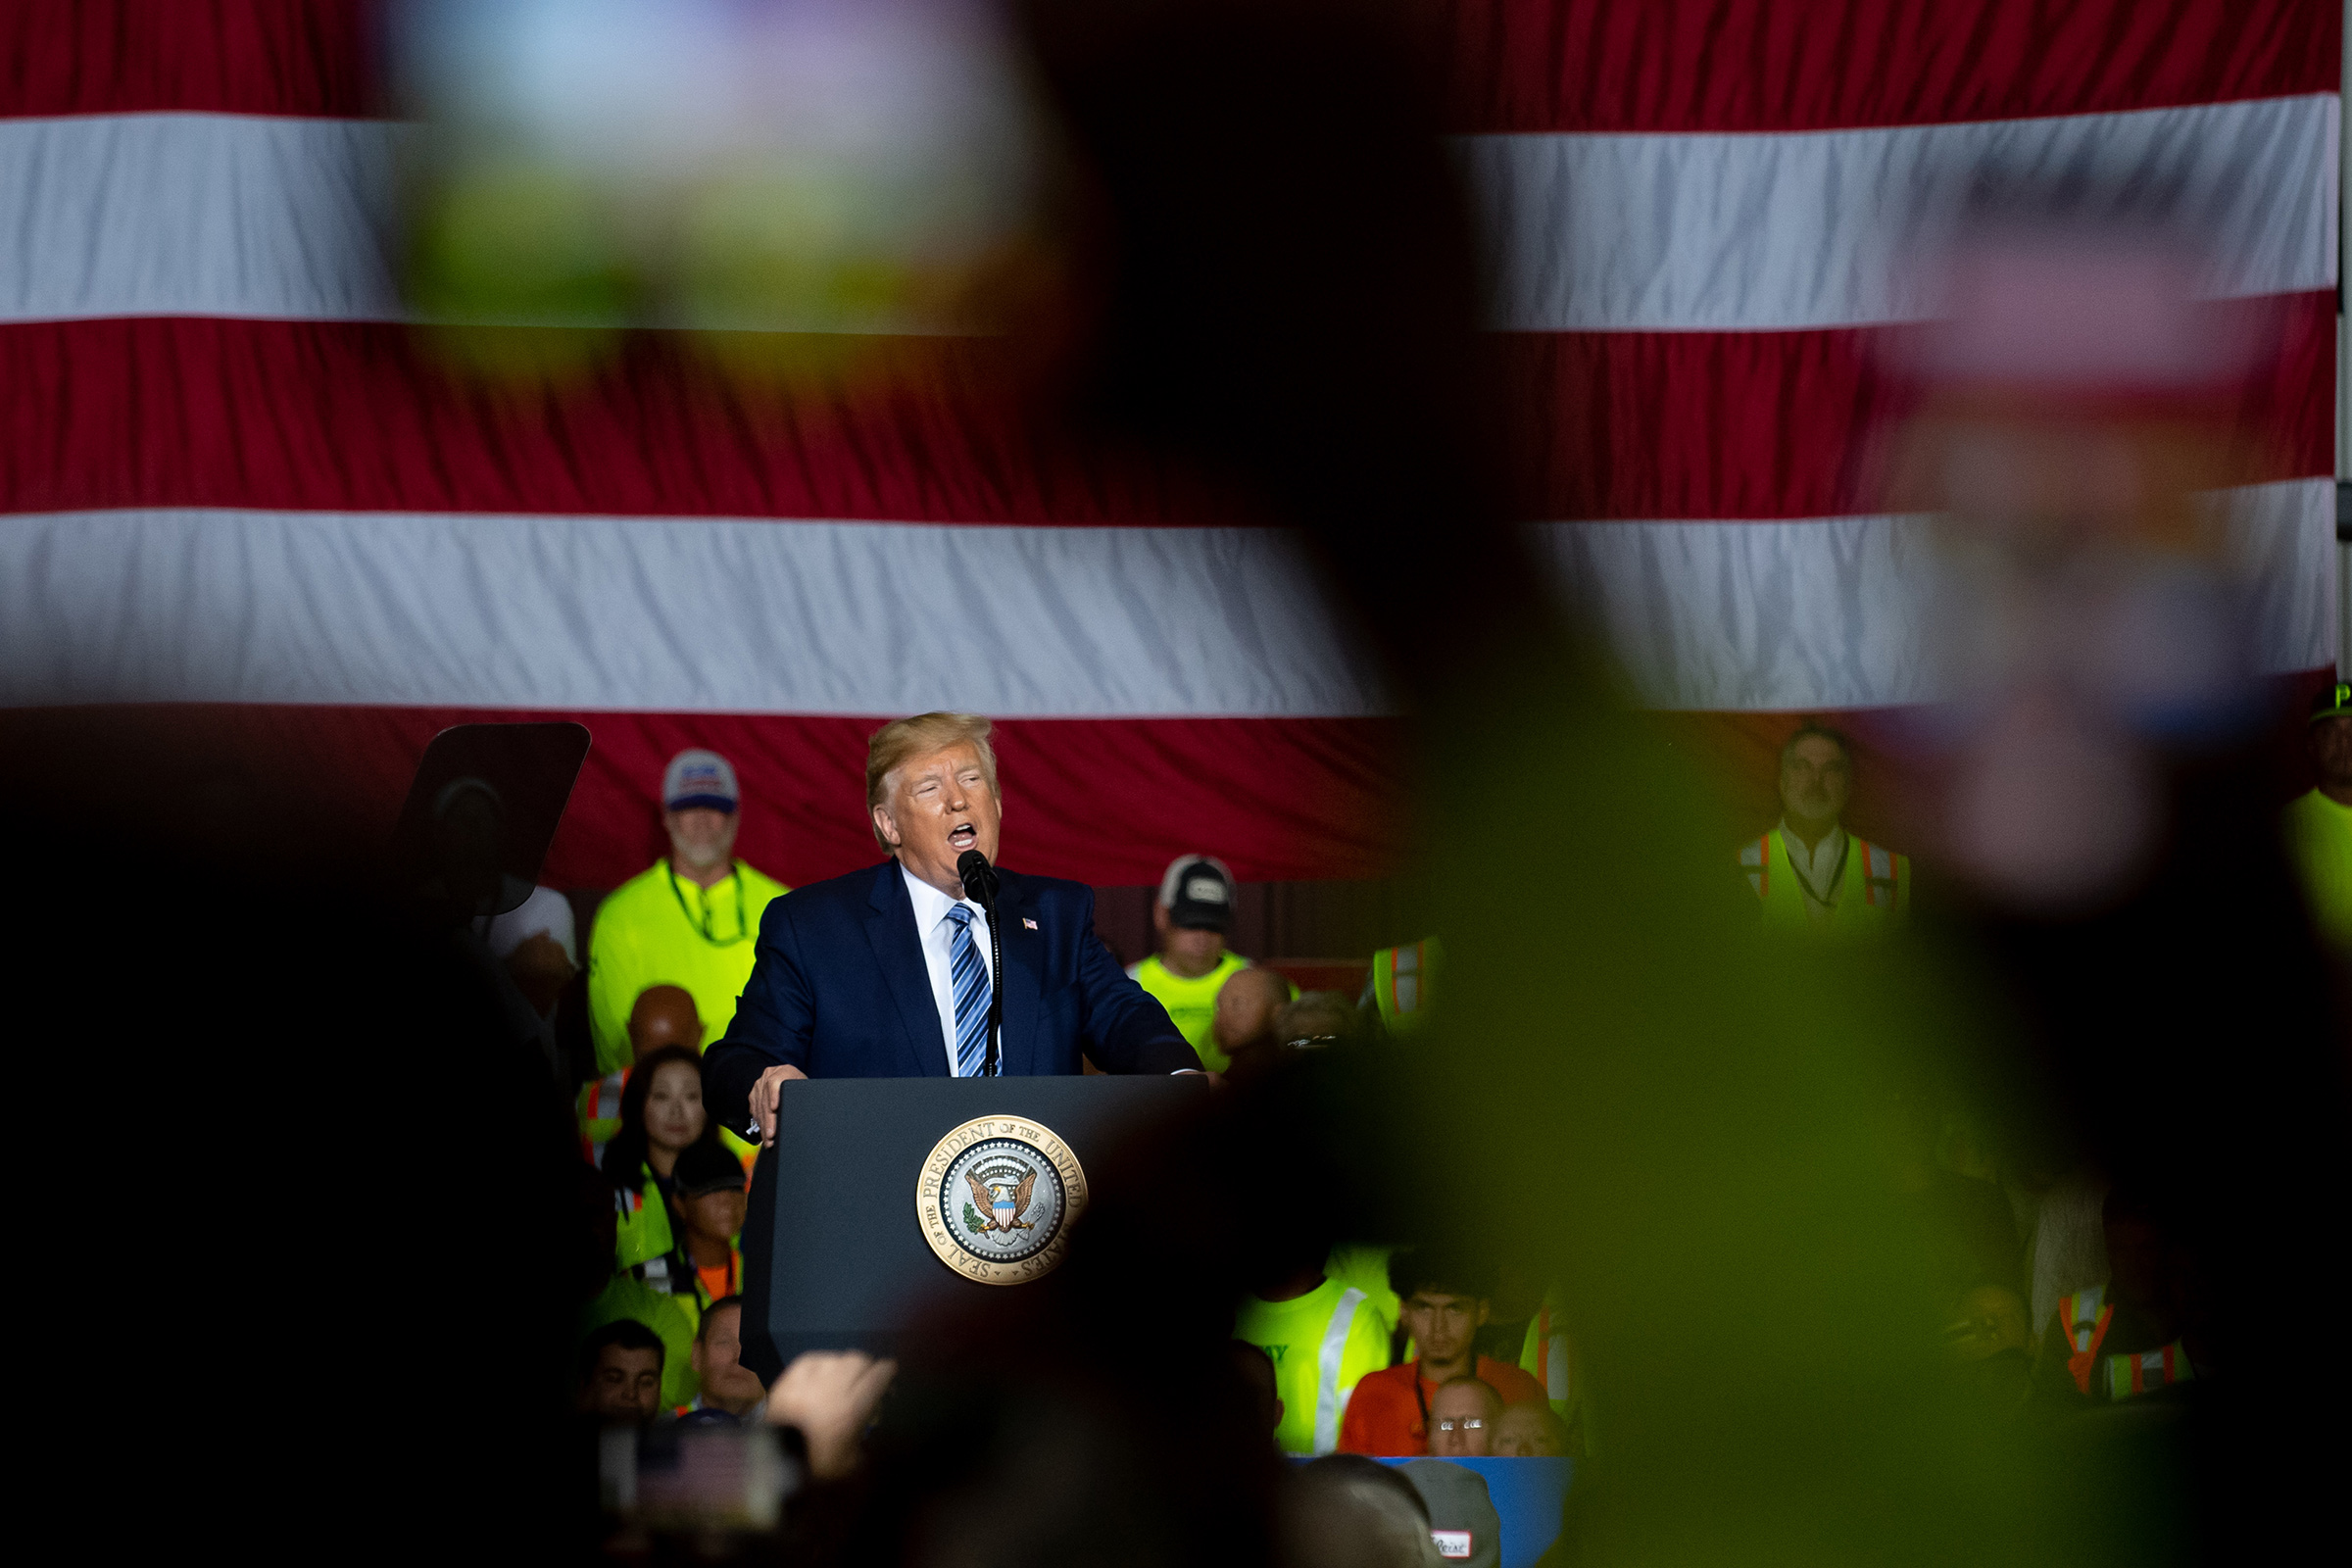 President Donald Trump speaks to contractors at the Shell Chemicals Petrochemical Complex on Aug. 13, 2019 in Monaca, Pa.